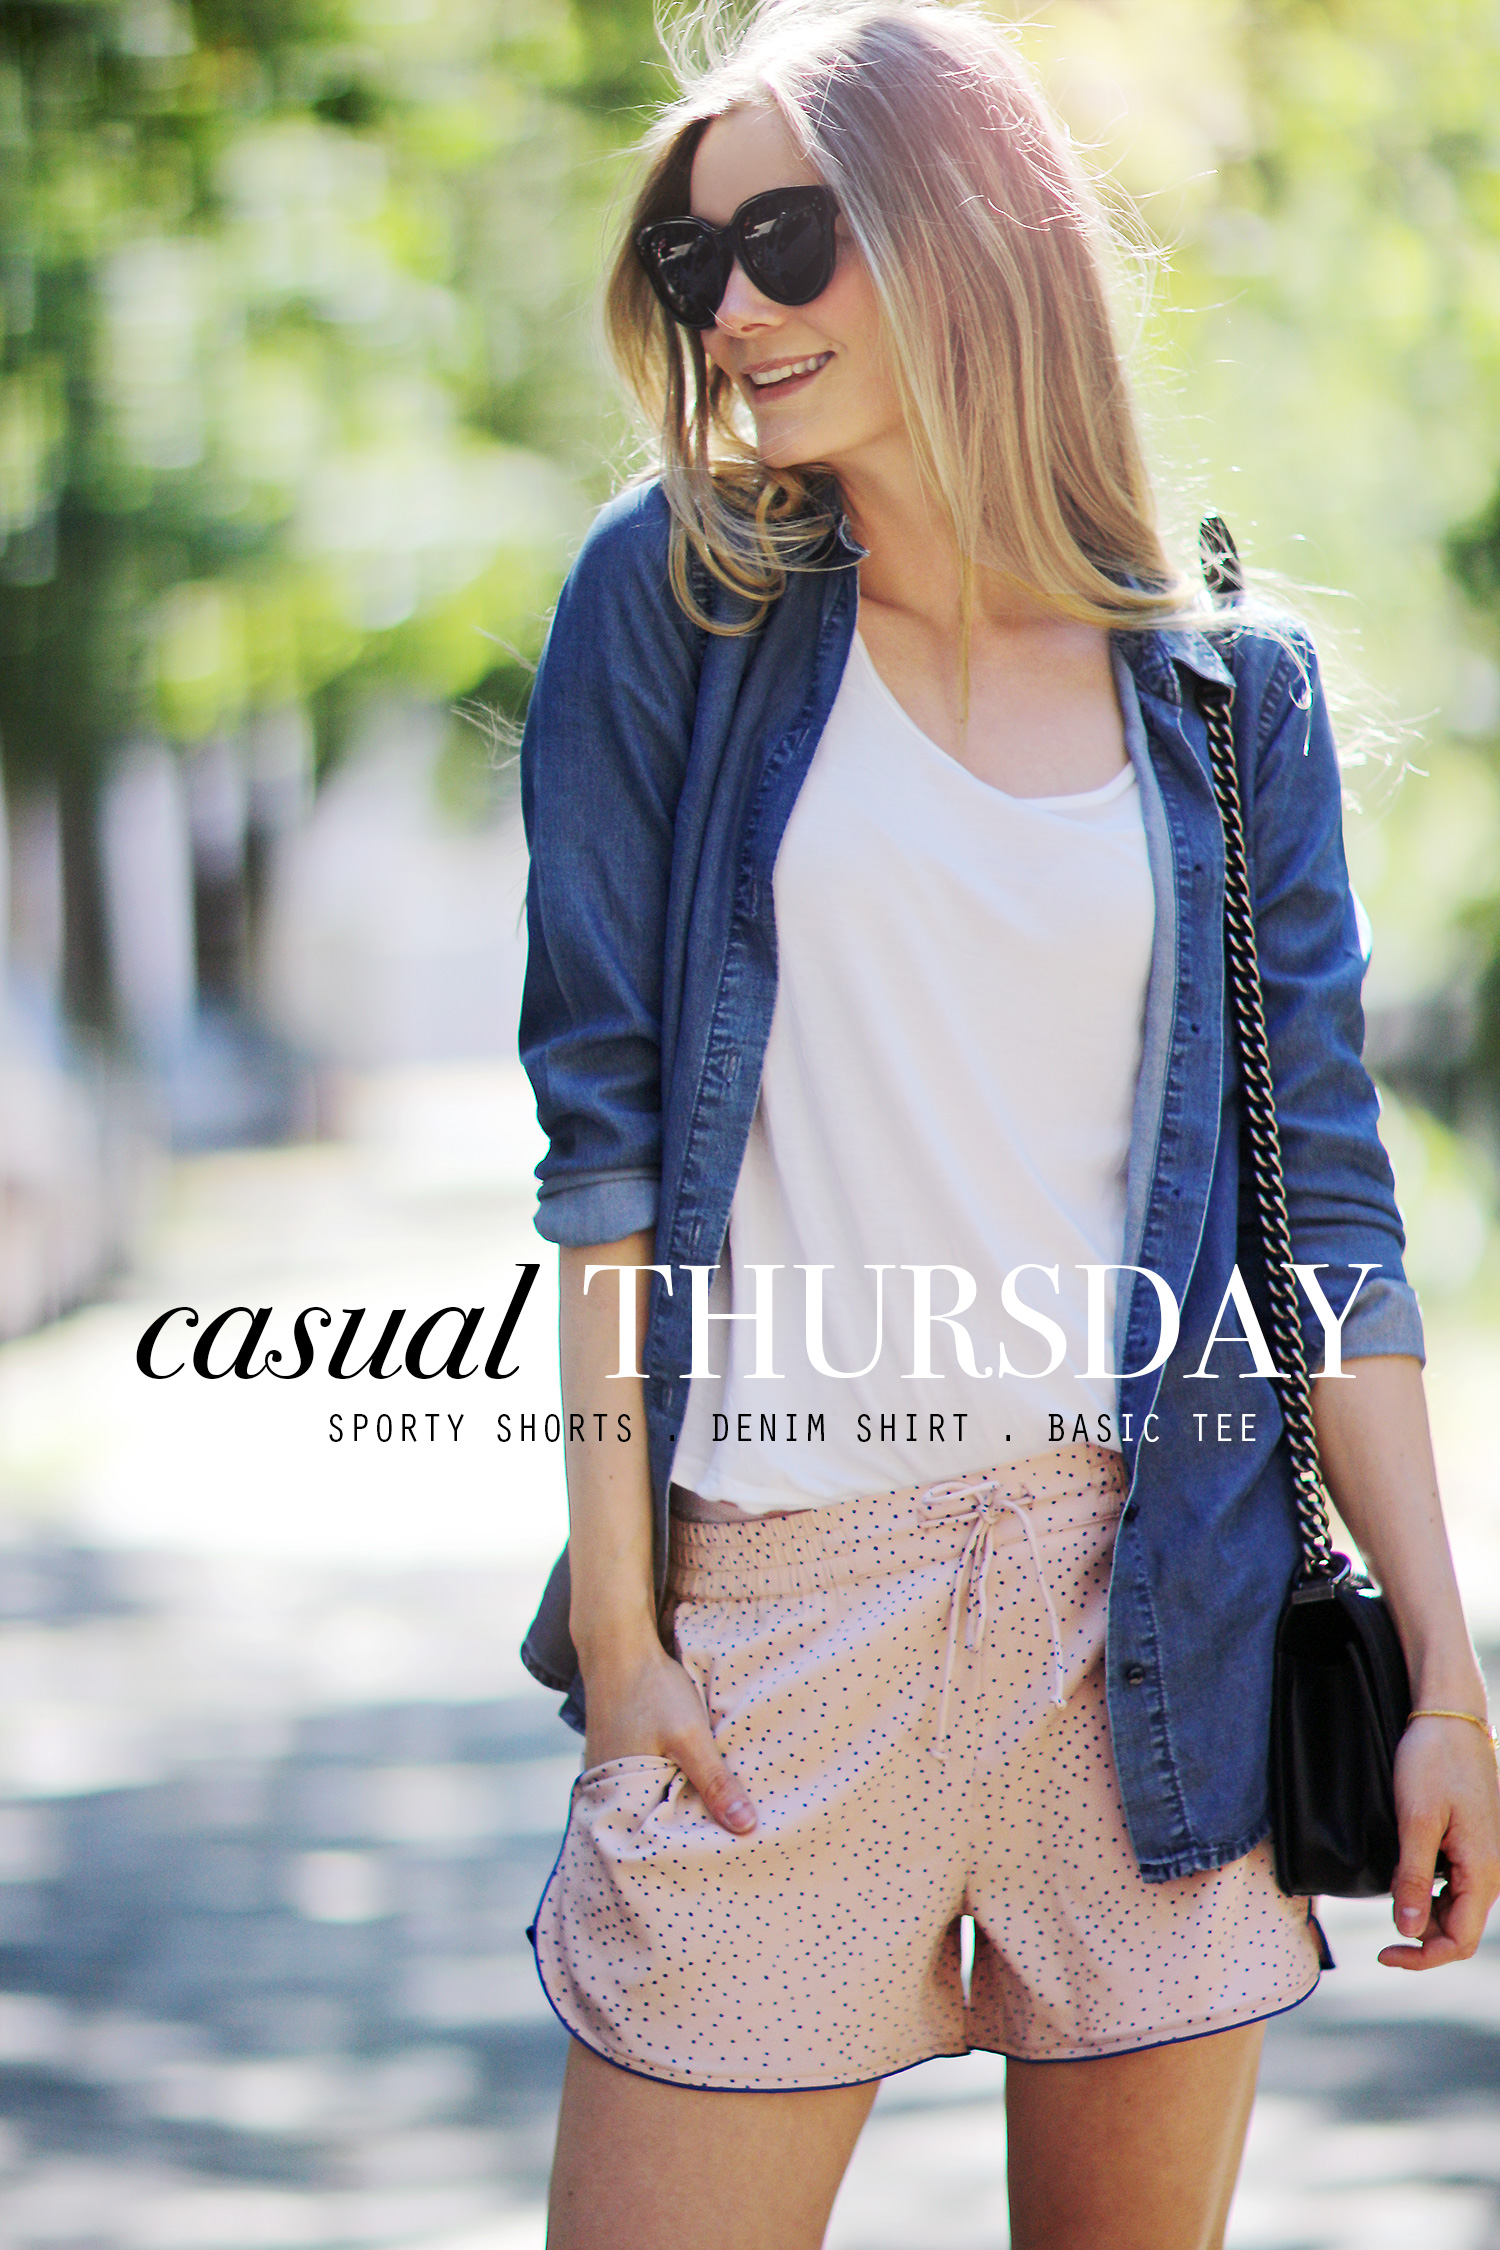 casual-thursday@2x